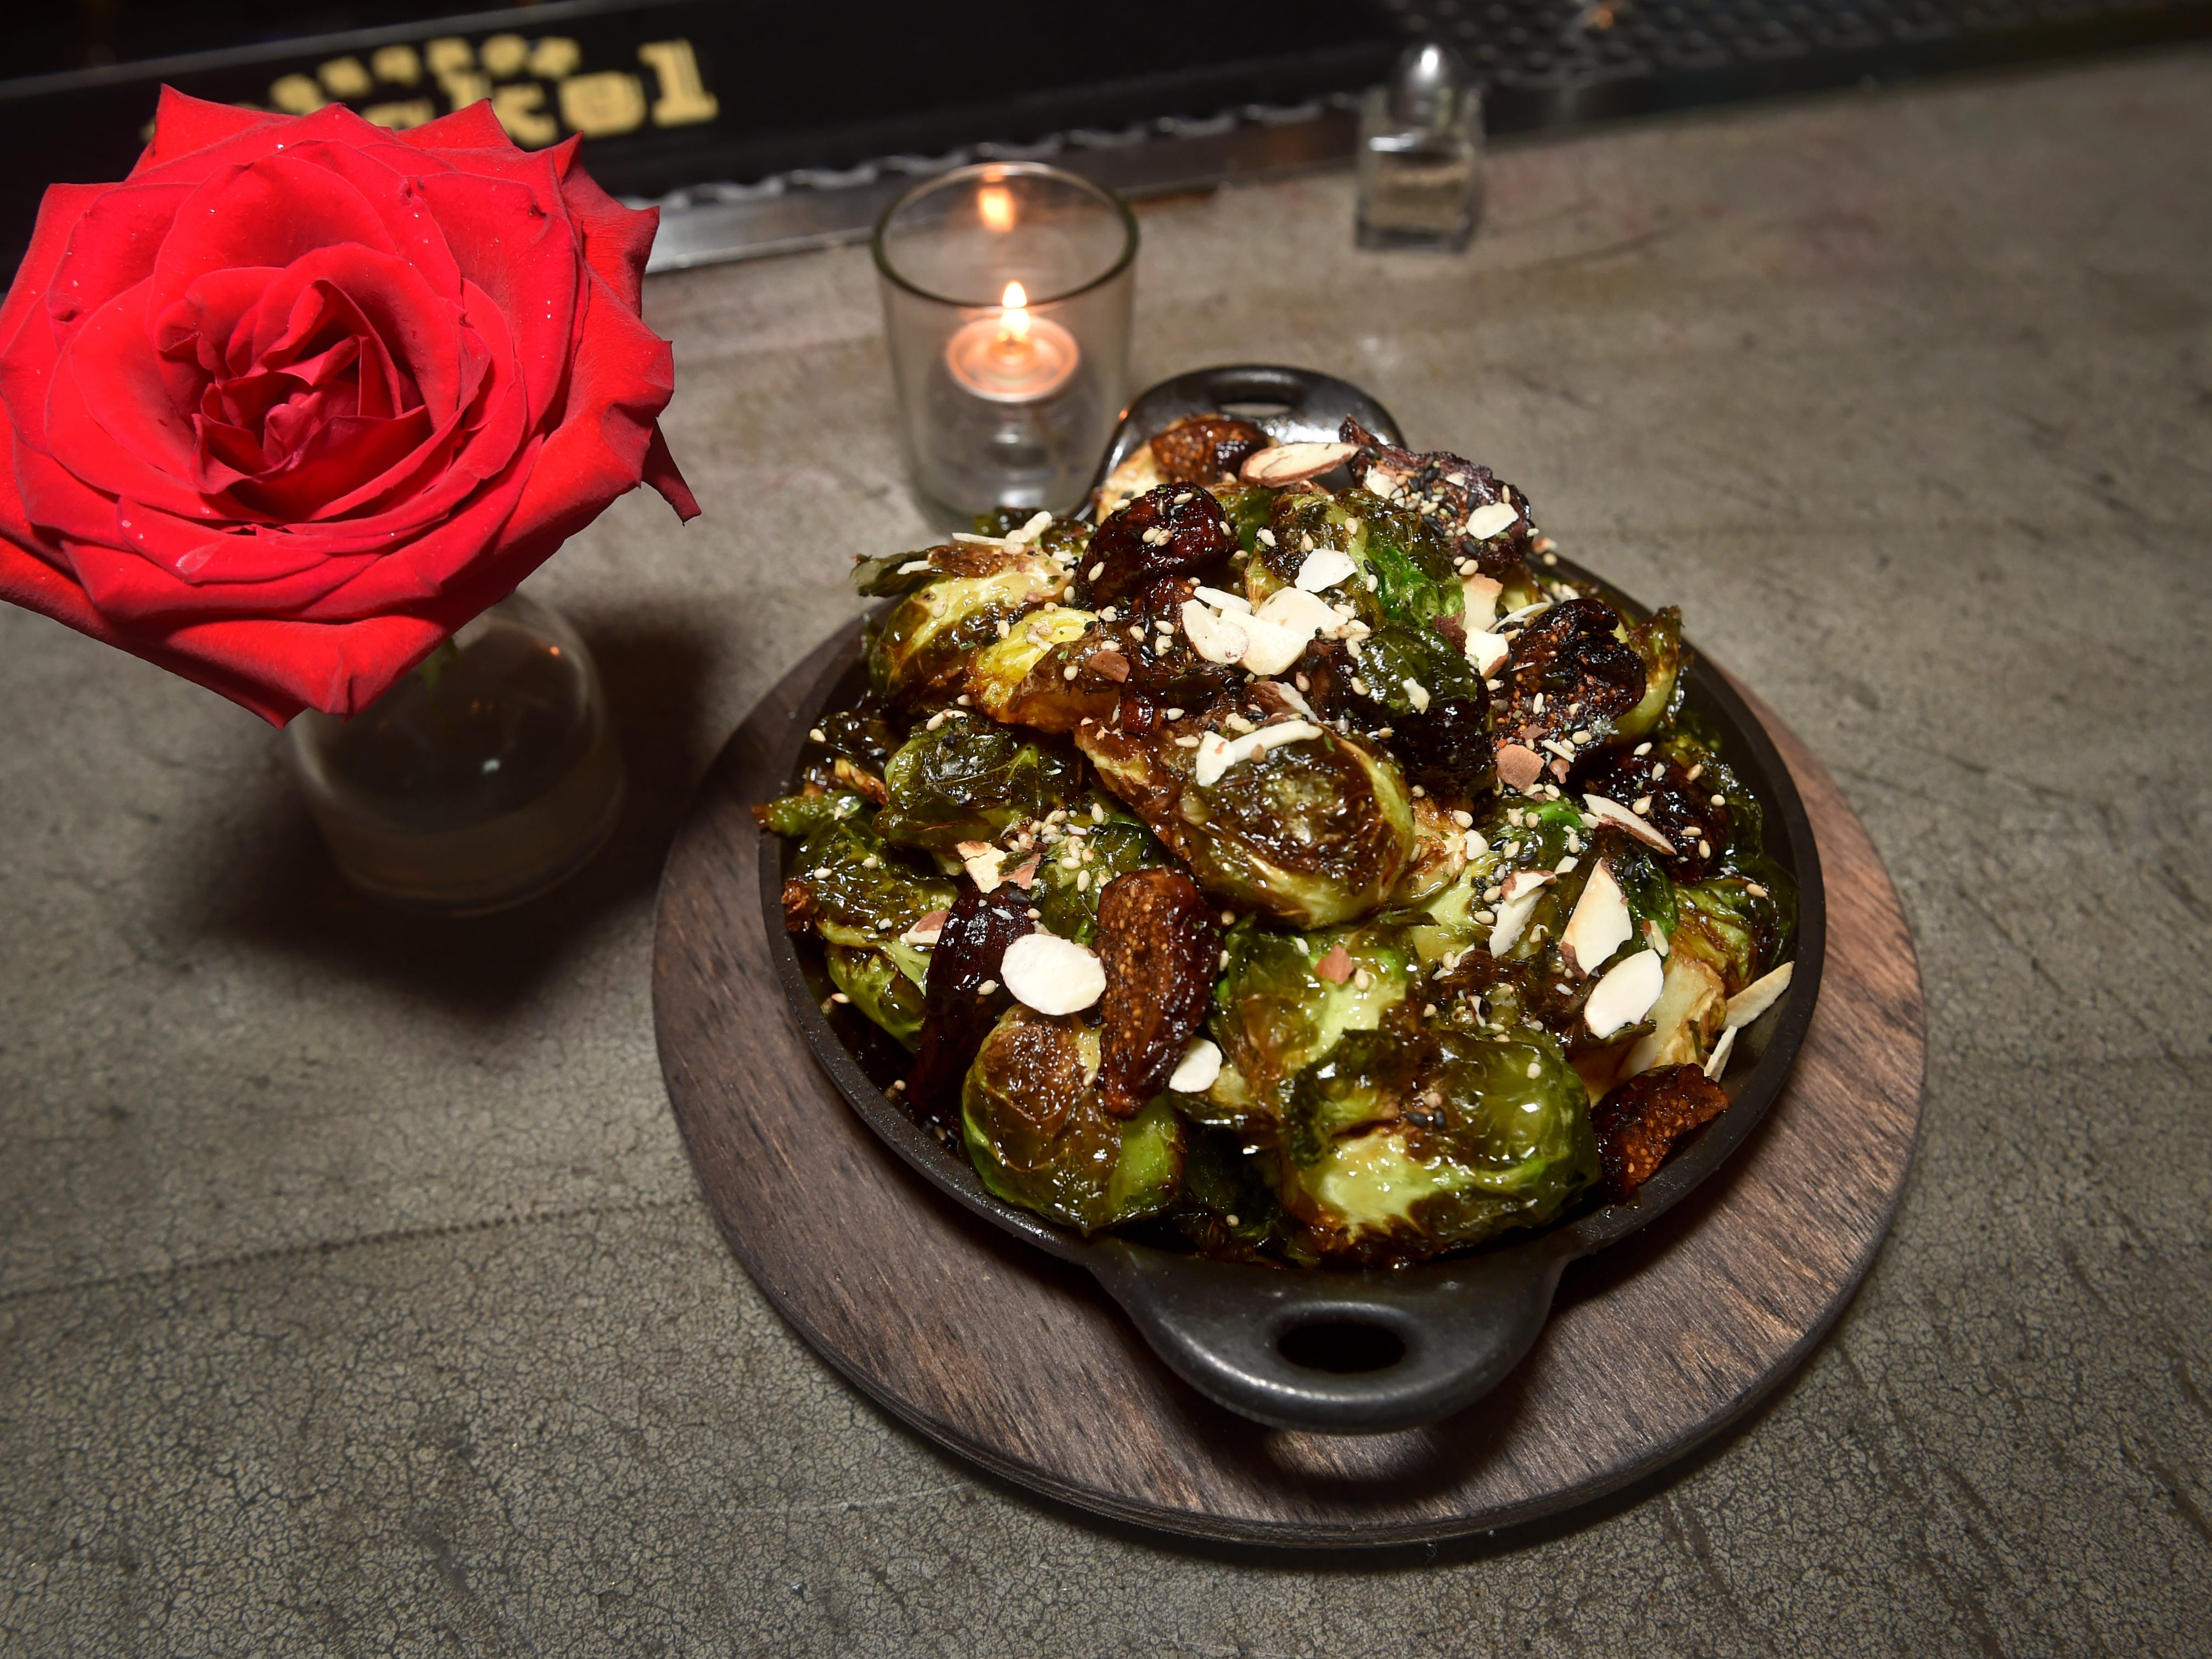 Among the appetizers at The Park Restaurant and Bar in Oak Park is a plate of brussel sprouts with black mission figs and an almond sesame turikake.